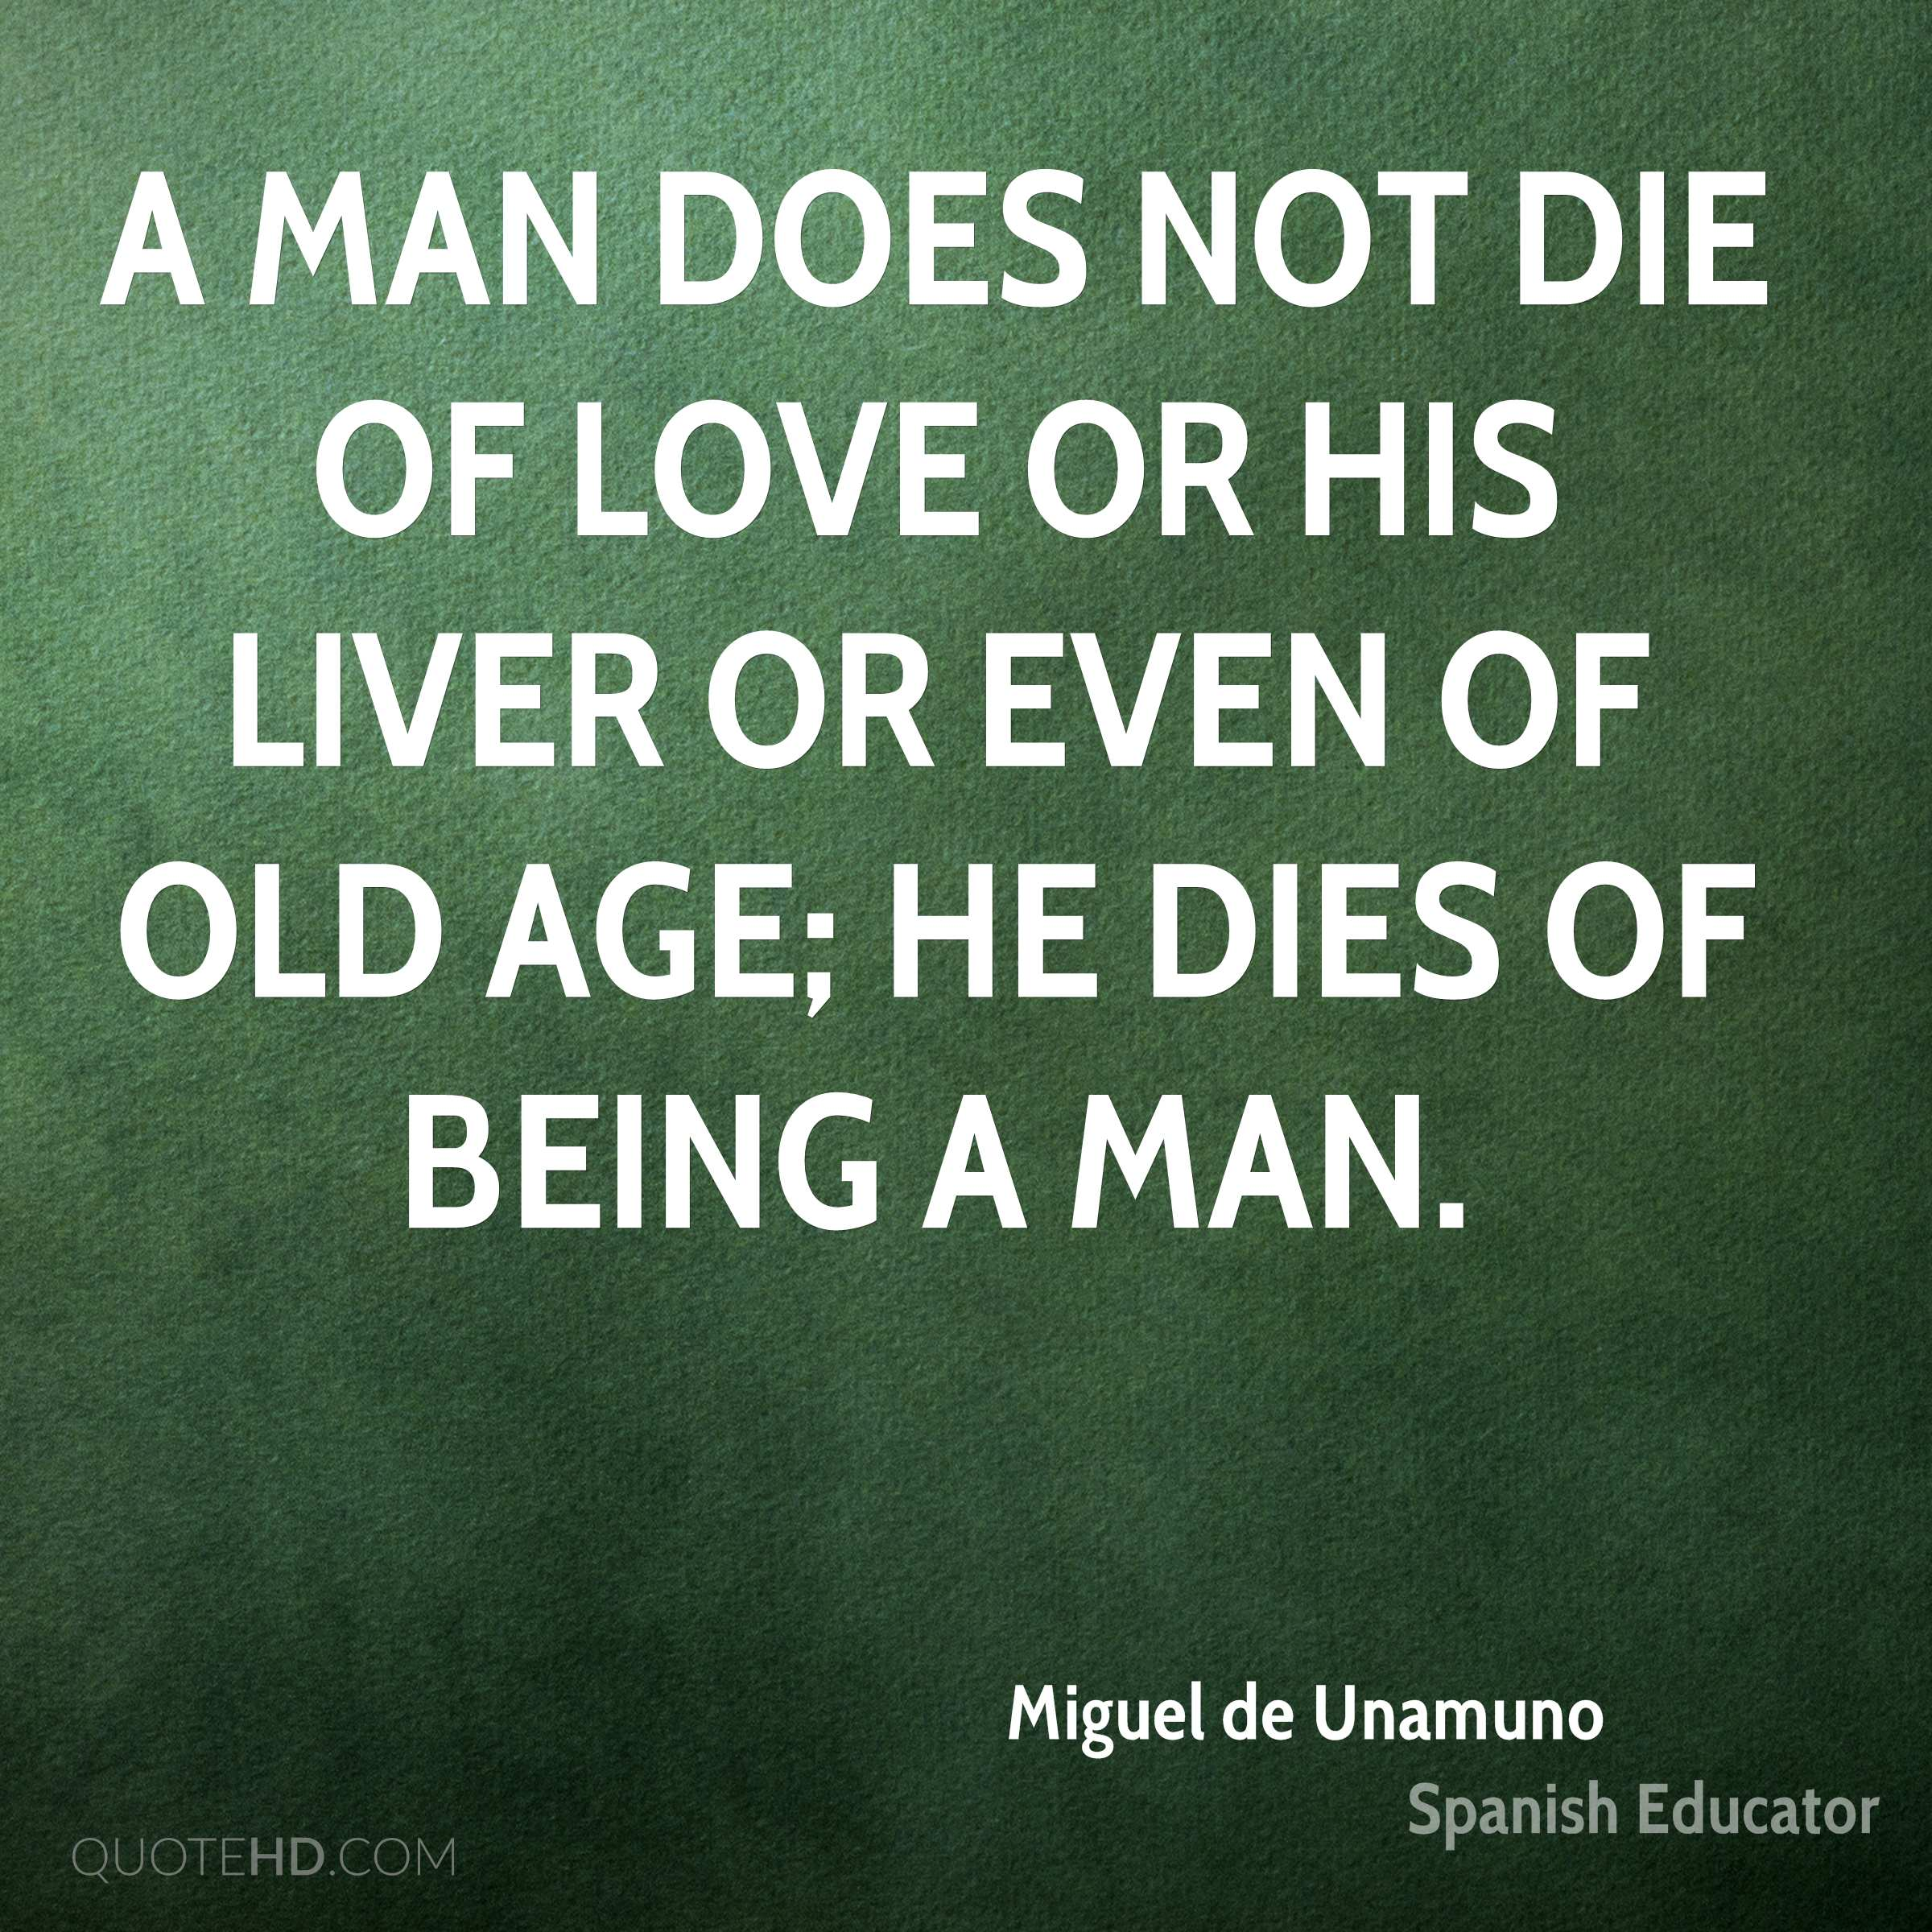 A man does not die of love or his liver or even of old age; he dies of being a man.